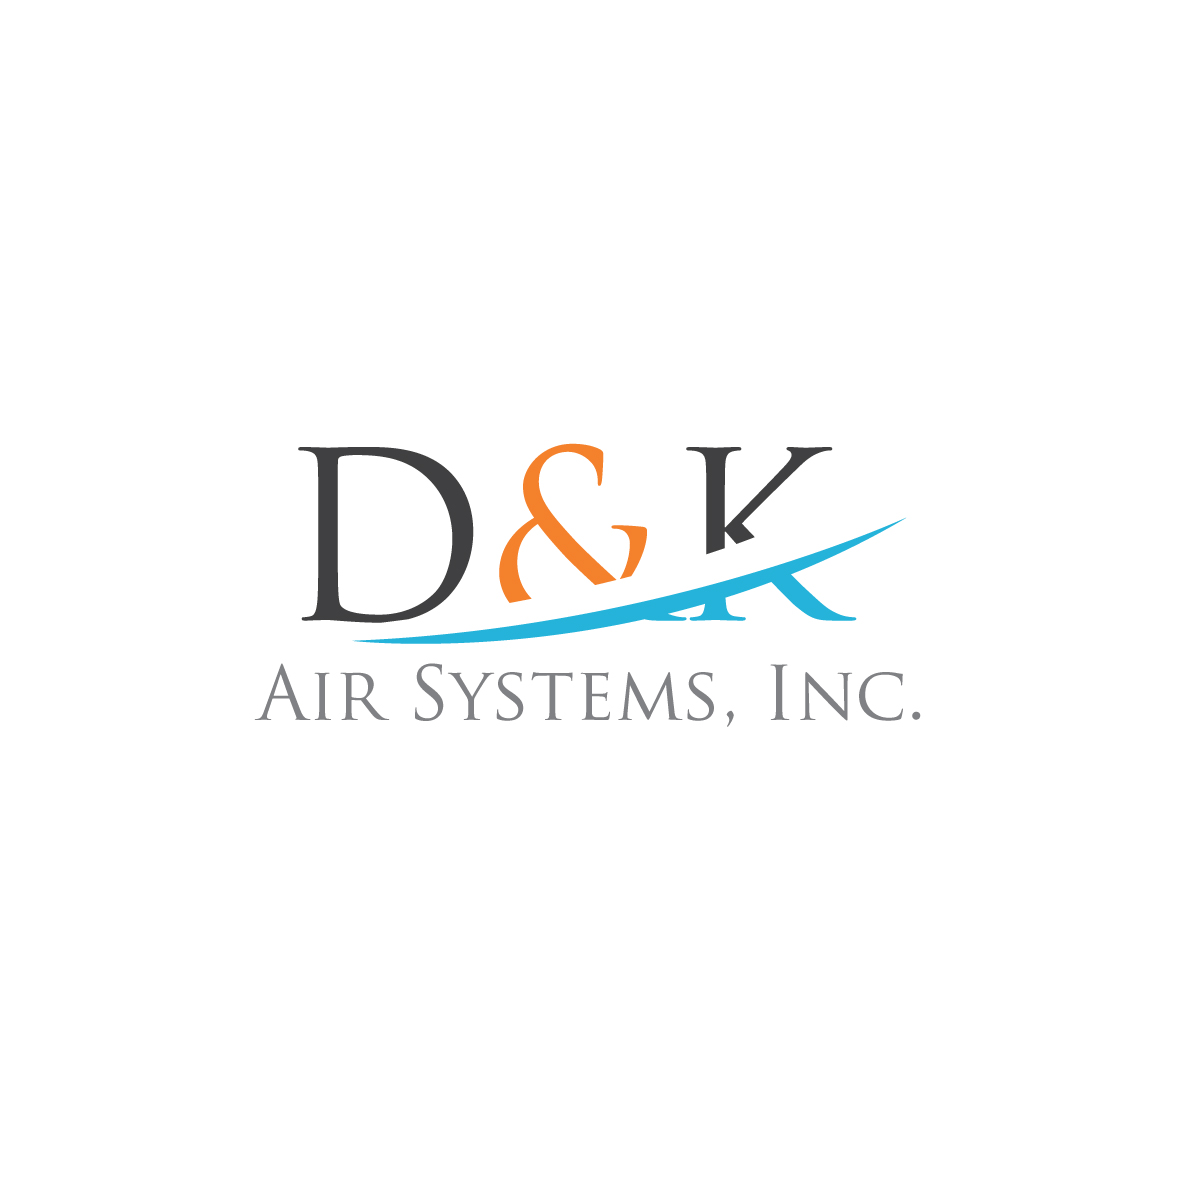 Logo Design by ex - Entry No. 13 in the Logo Design Contest D&K Air Systems, Inc..